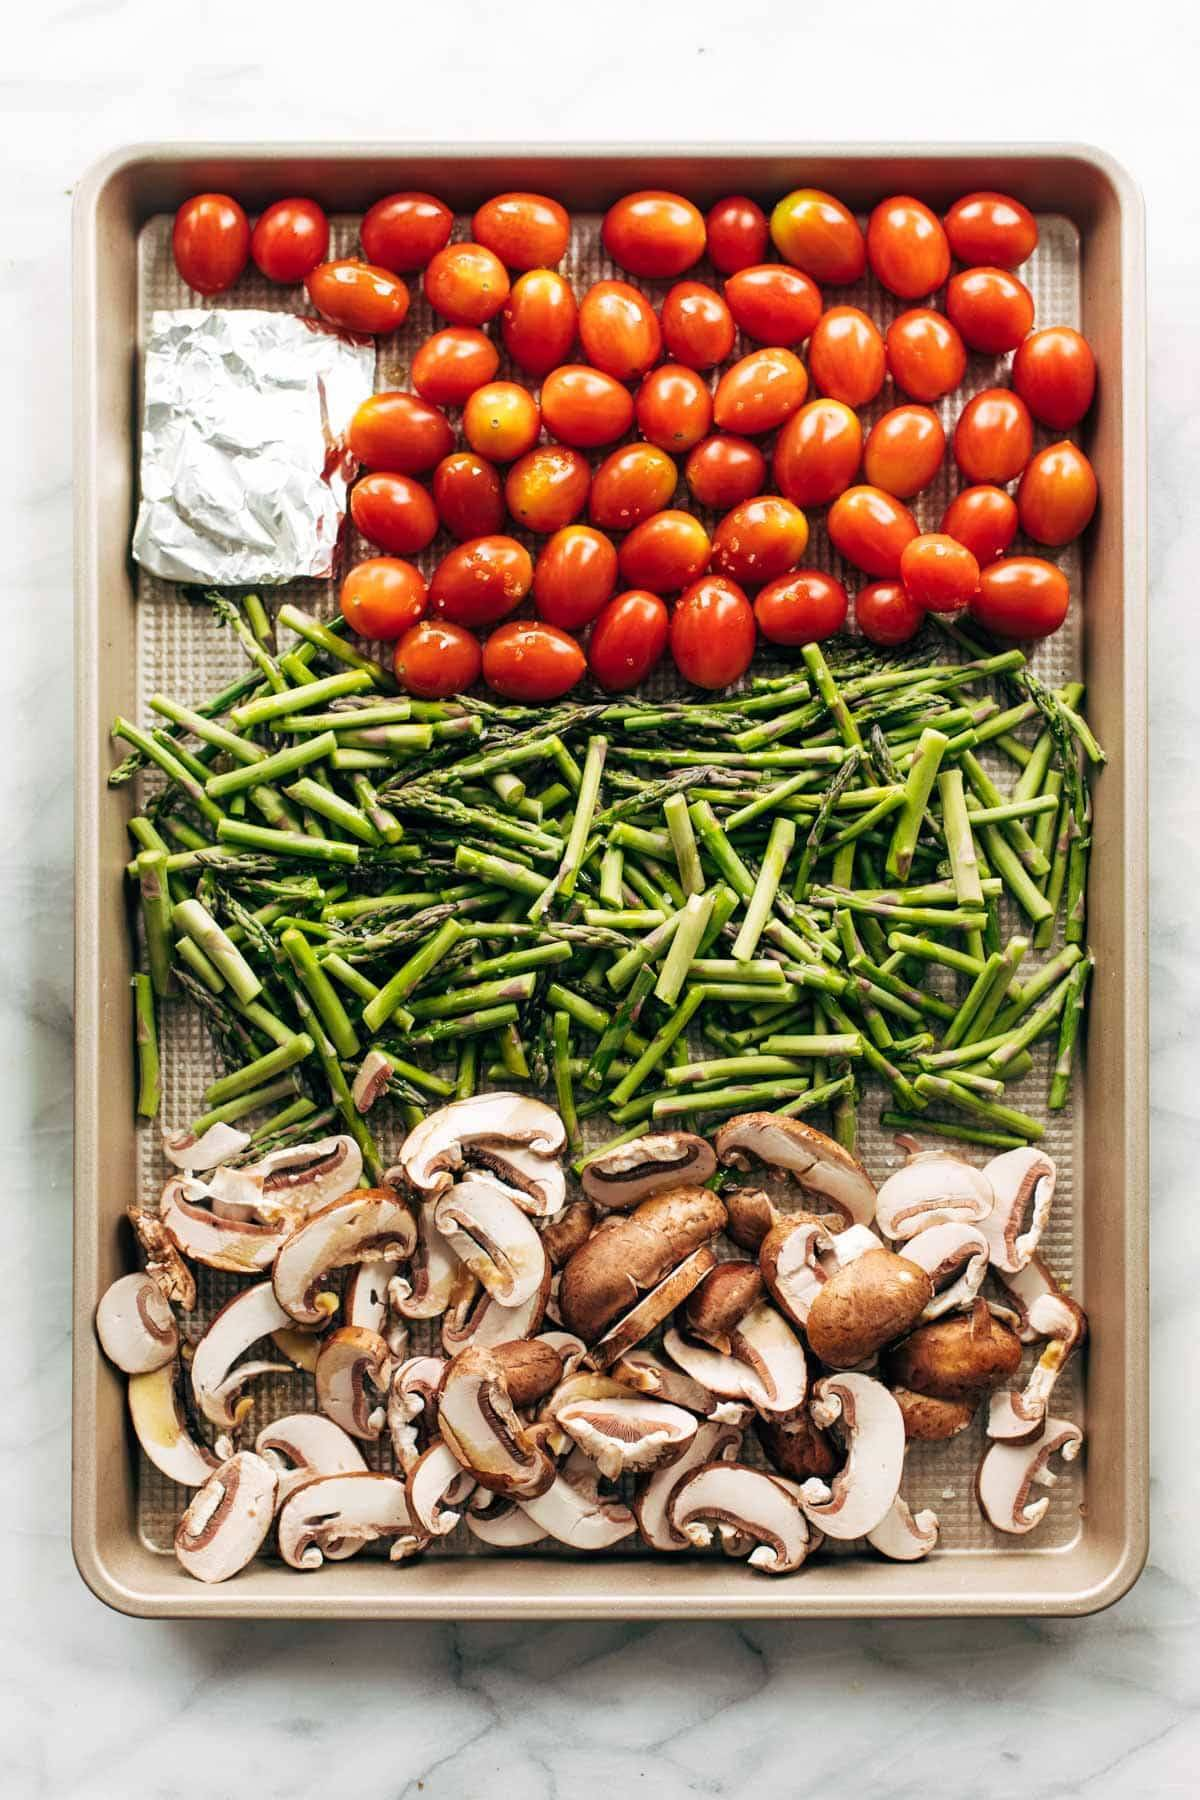 Vegetables on a sheet pan for roasting.